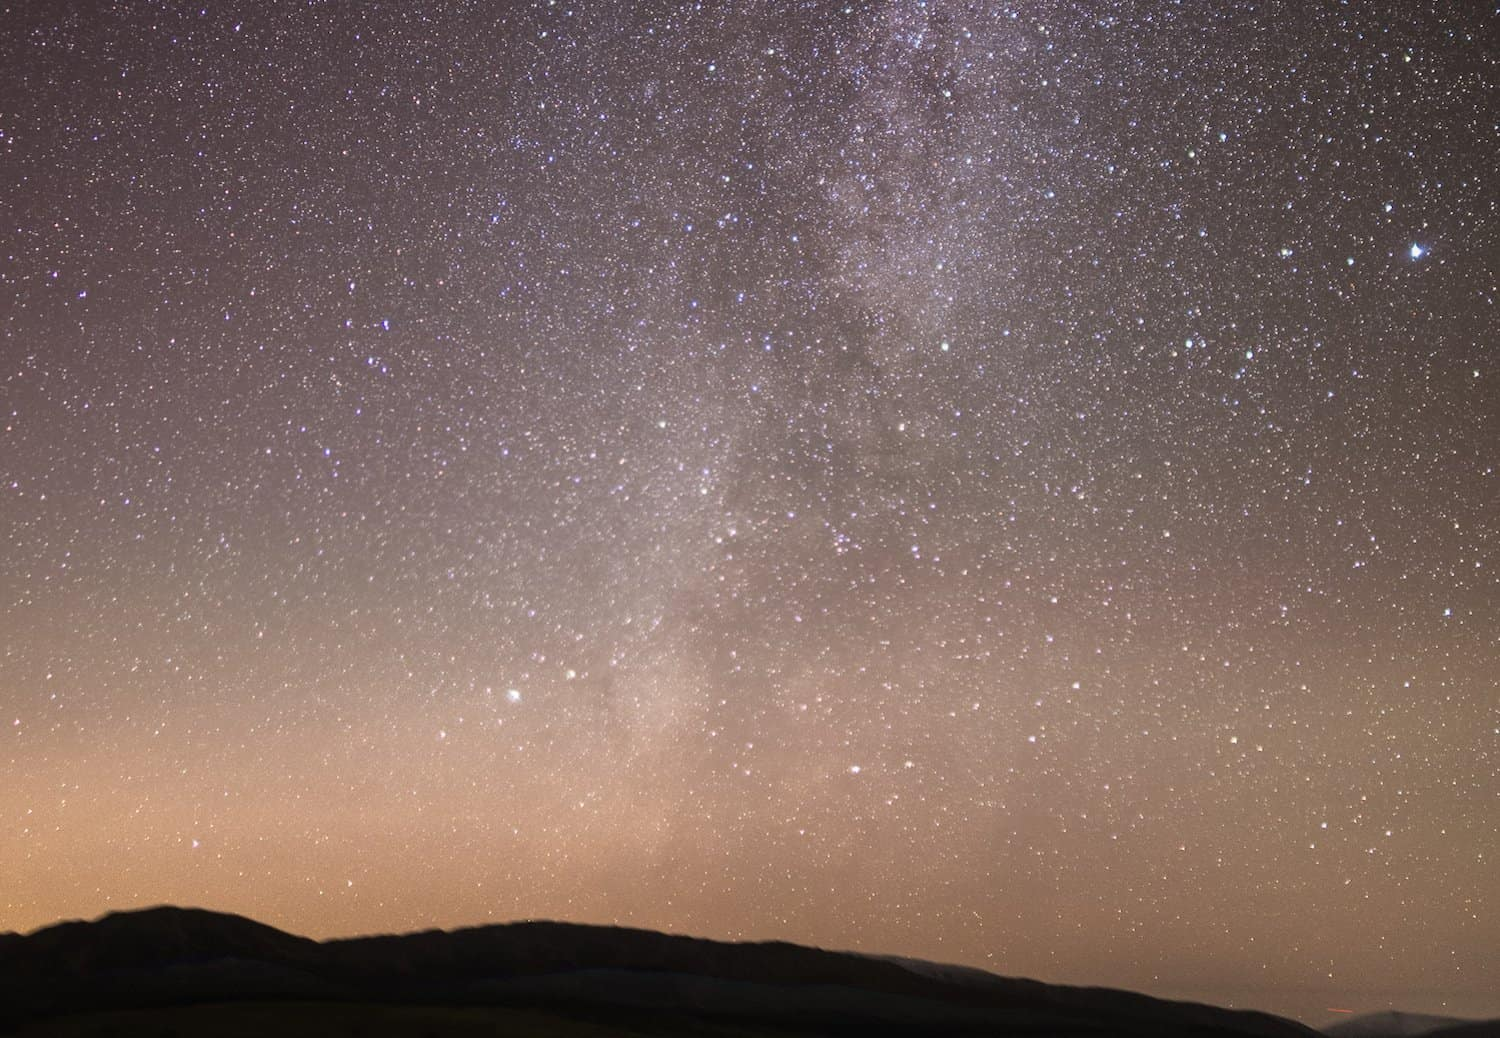 Stargazing in Scotland - Galloway Forest - Laurie Nevay via Flickr